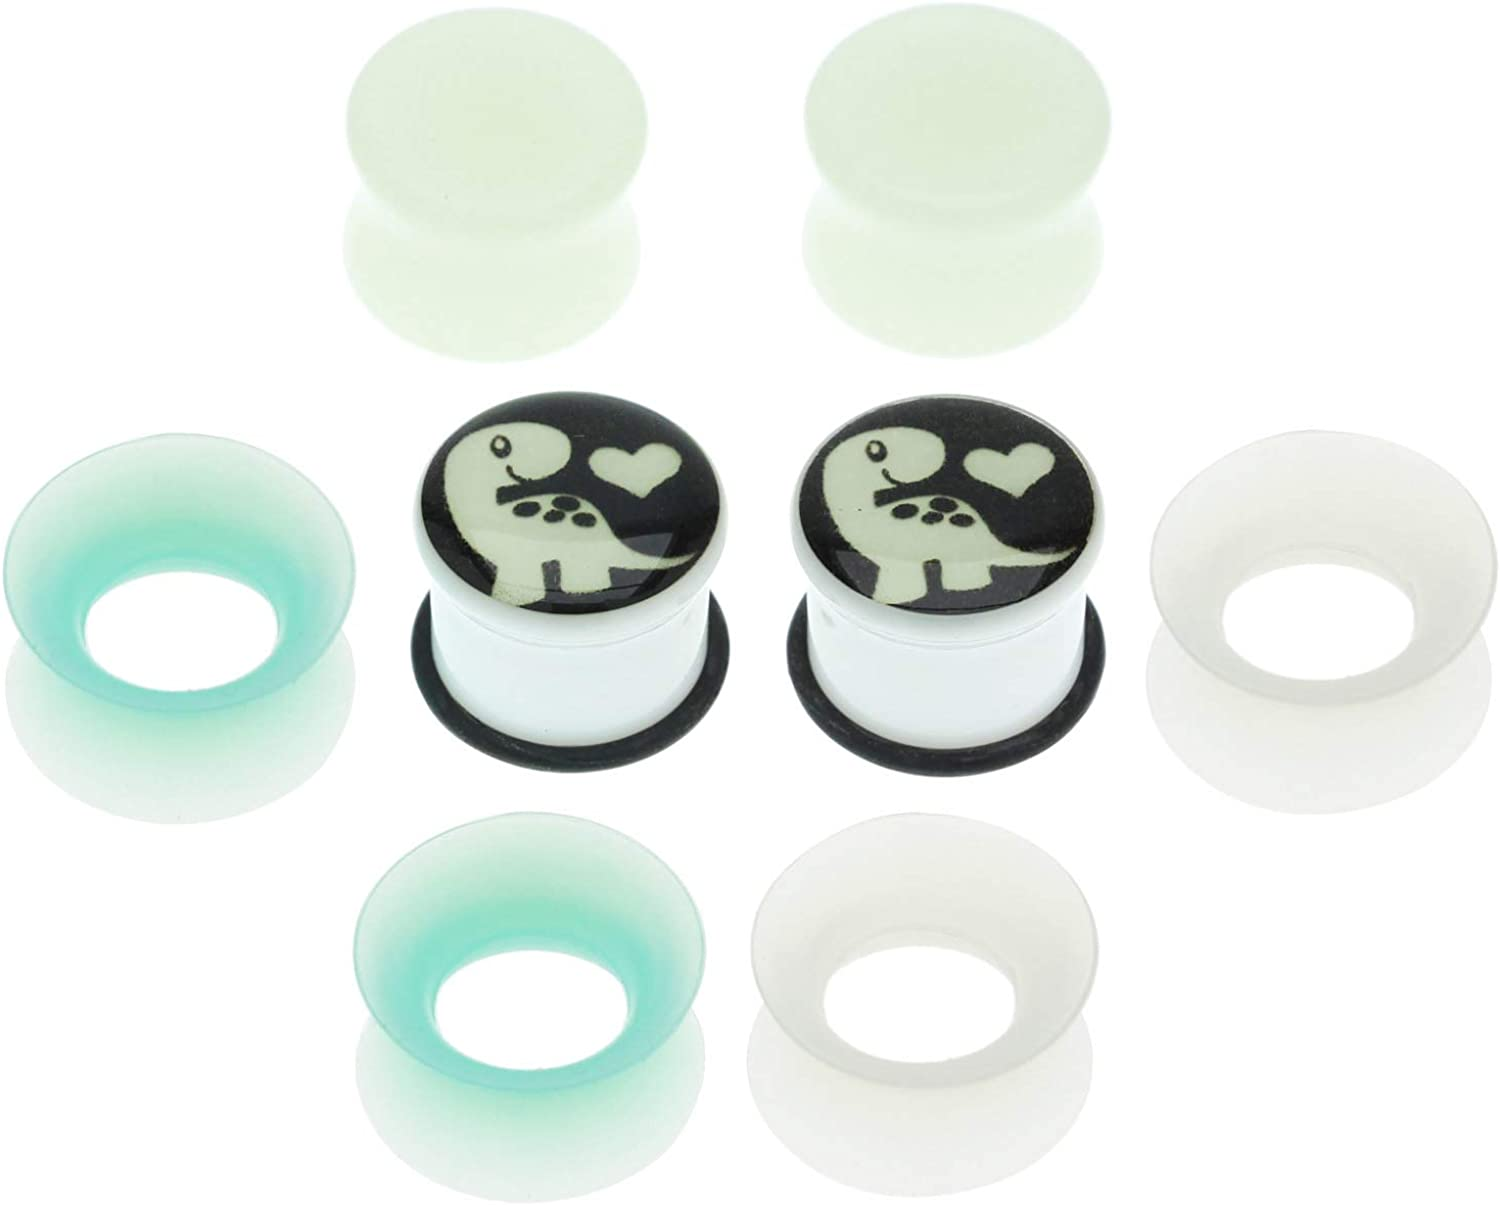 Balala 6mm-16mm Stone Acrylic Silicone Glow In the Dark Tunnels Plugs for Ears Gauges Piercing